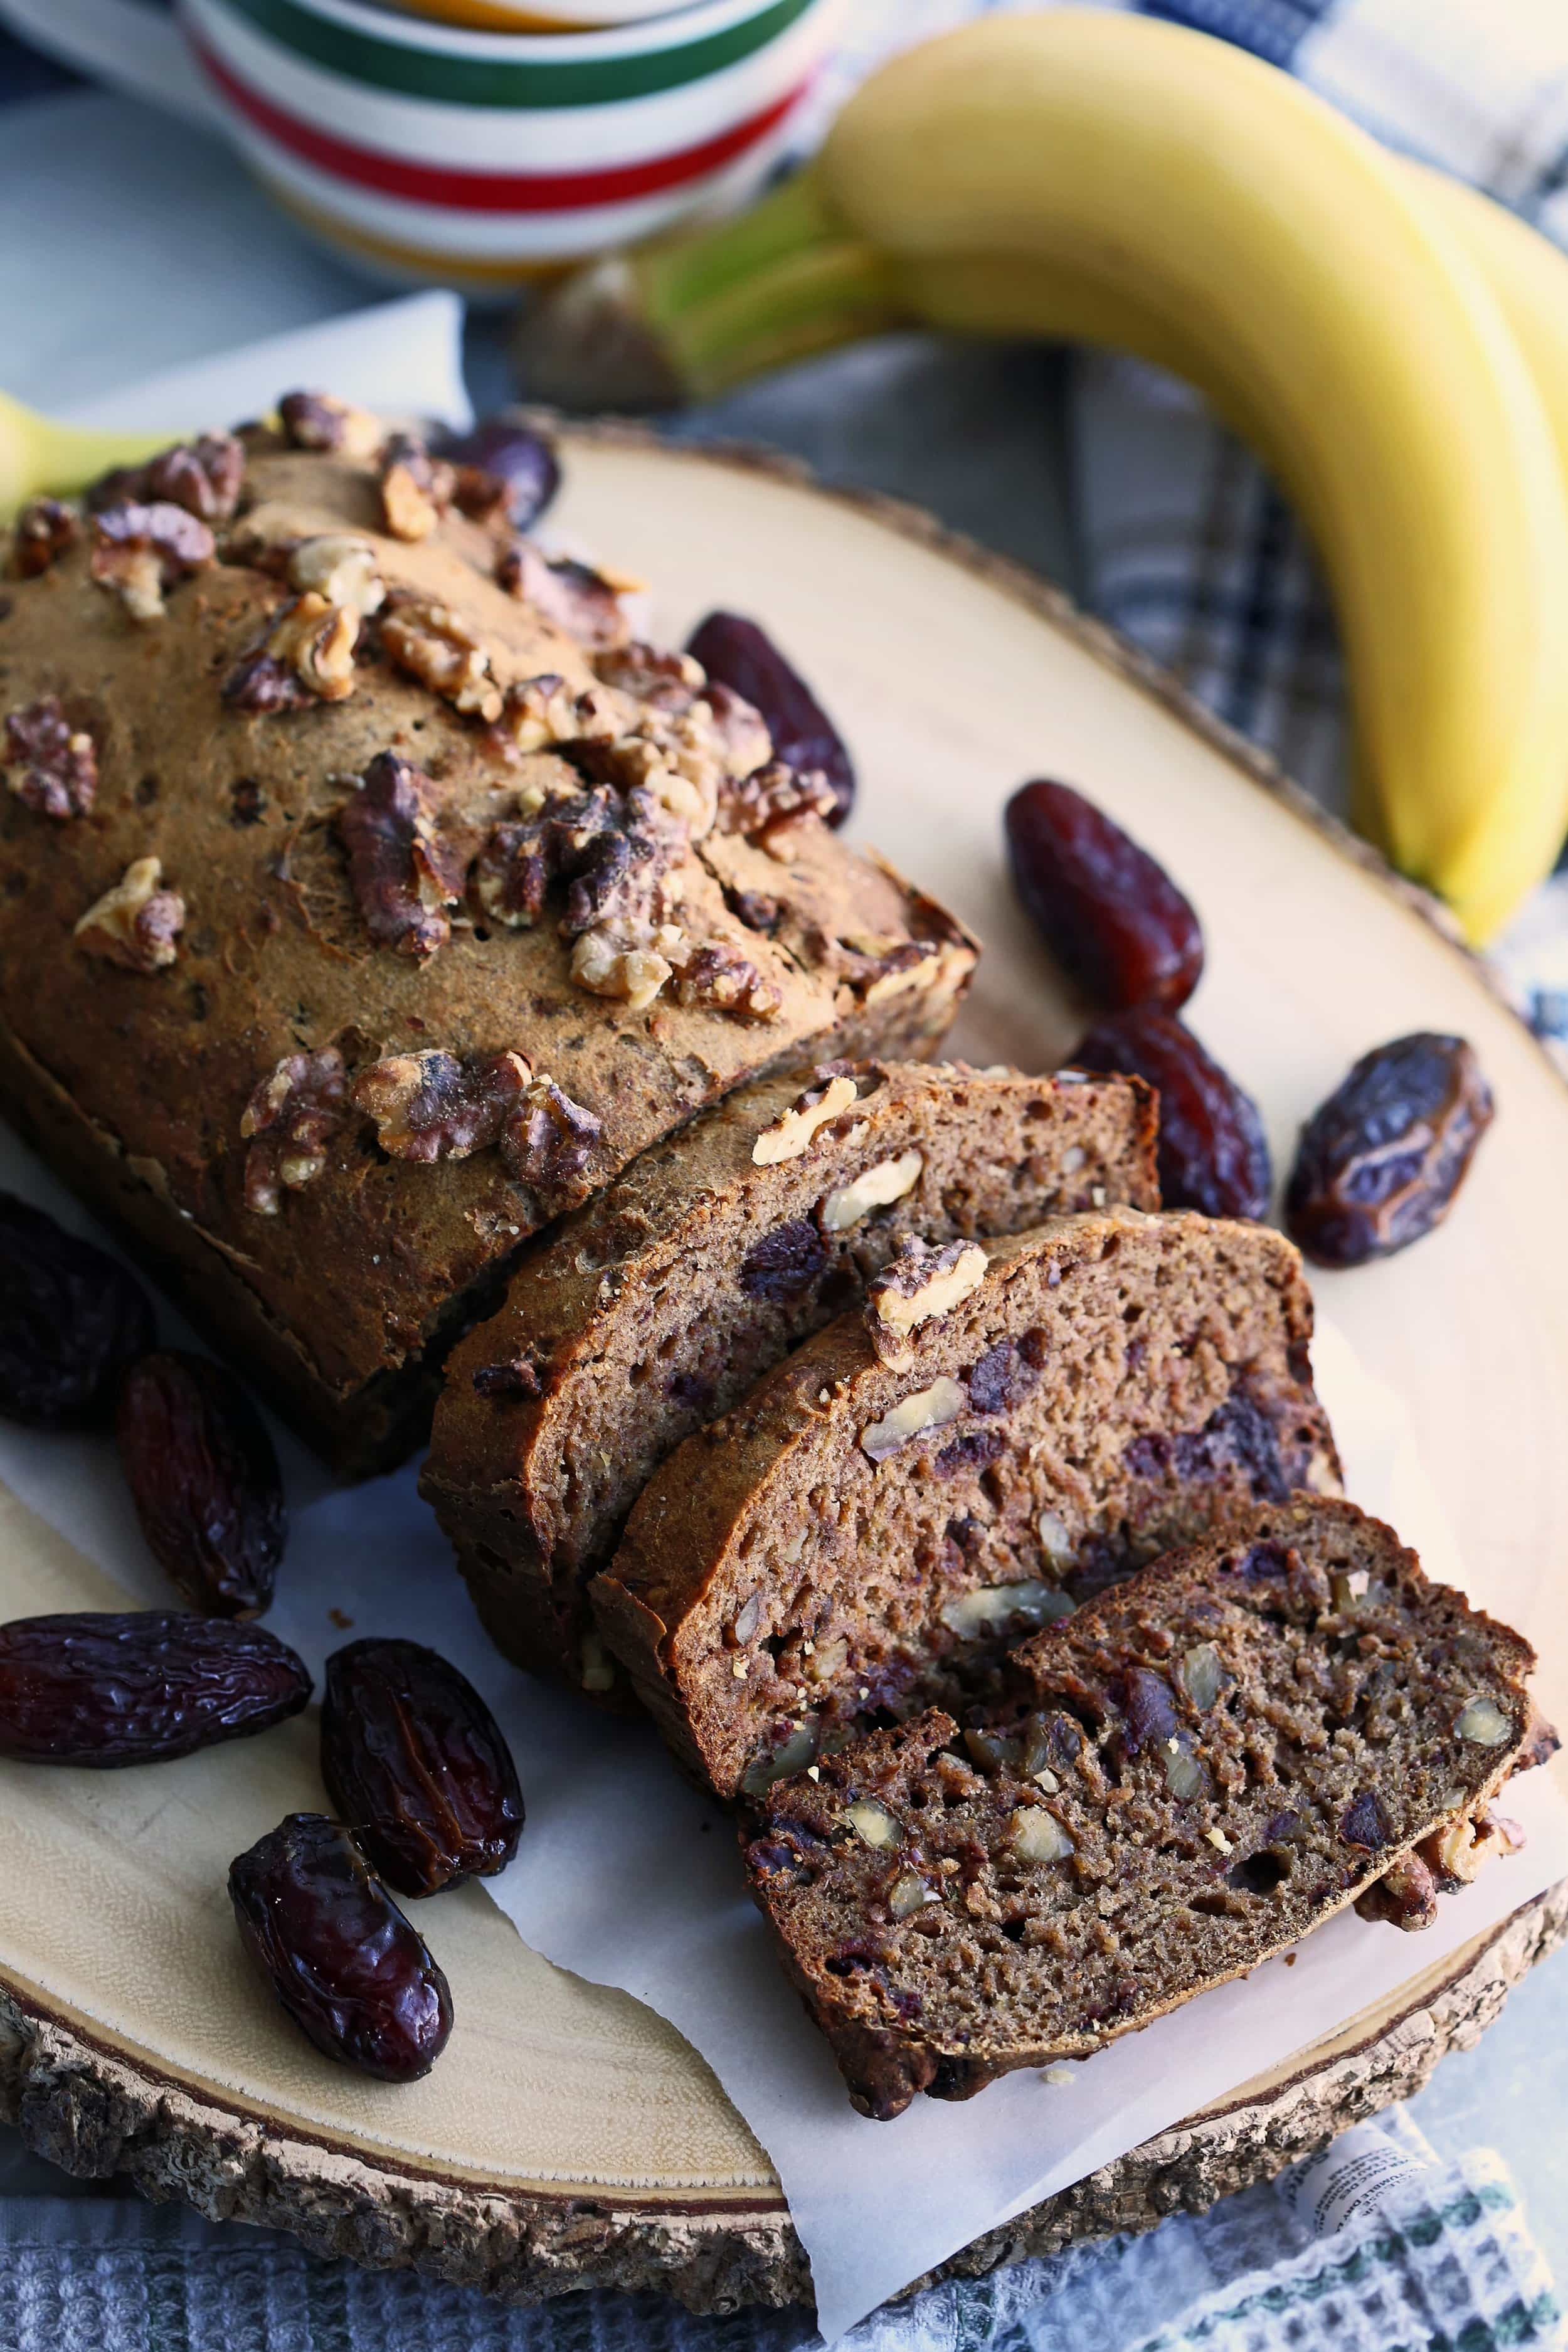 Sliced Date Banana Nut Bread surrounded by Medjool dates on a round wooden platter.